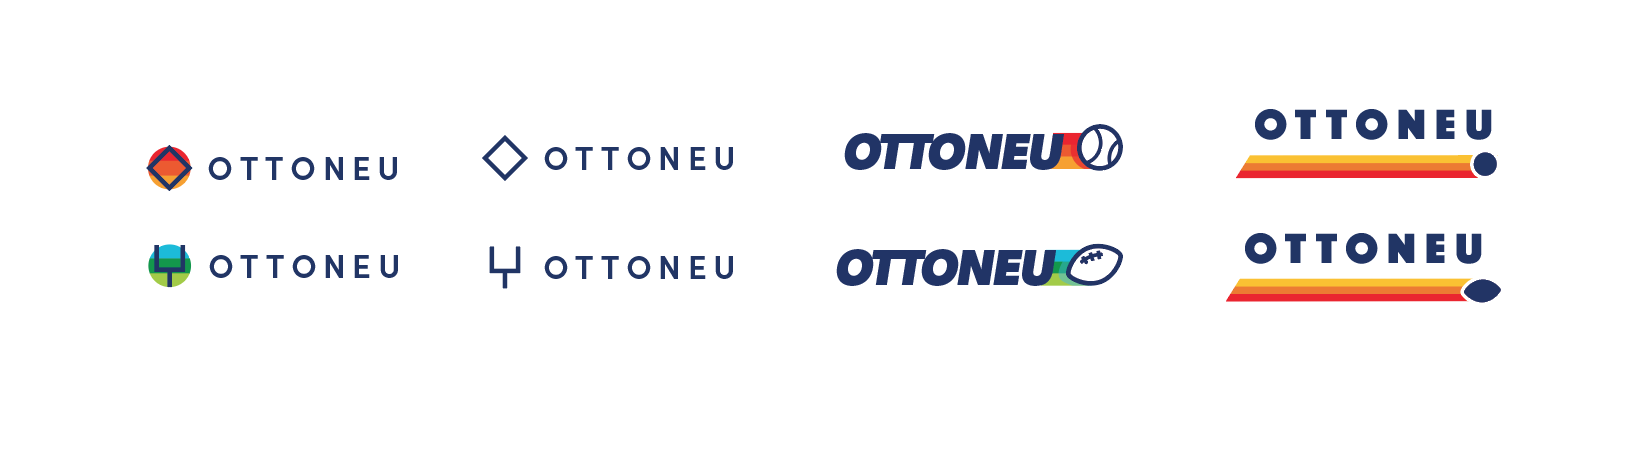 Four different variations of the Ottoneu logo